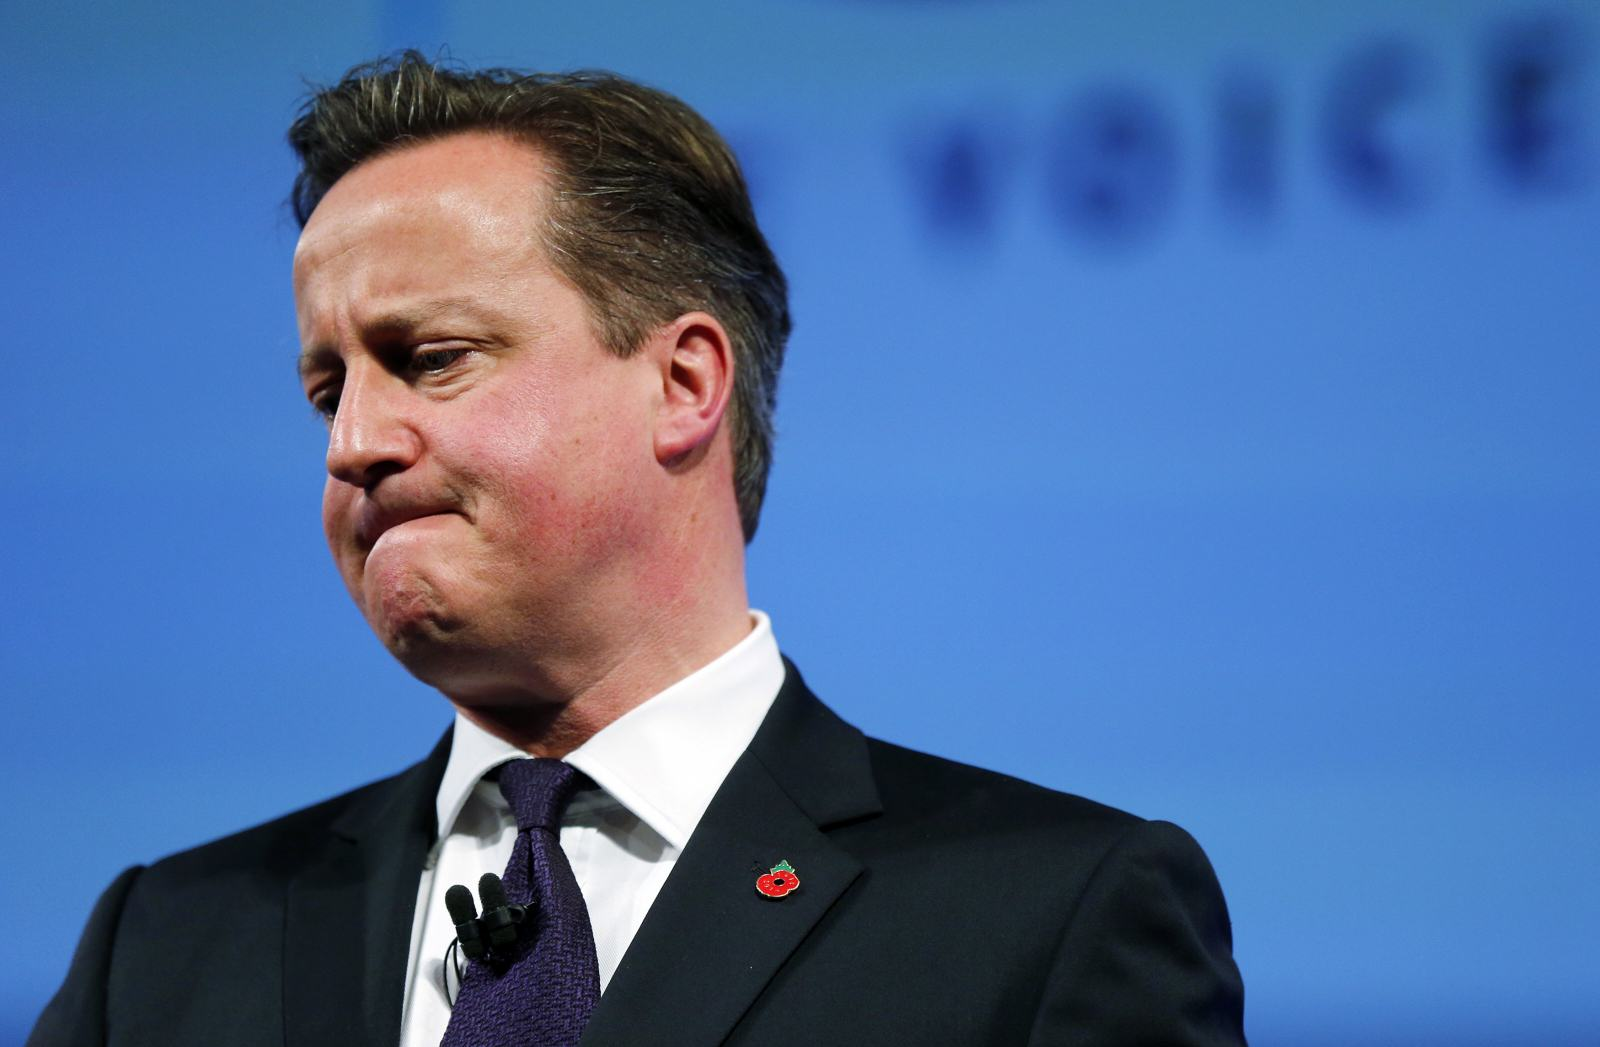 UNILAD david cameron3 David Cameron Stays Silent As Pig Gate Continues On Social Media